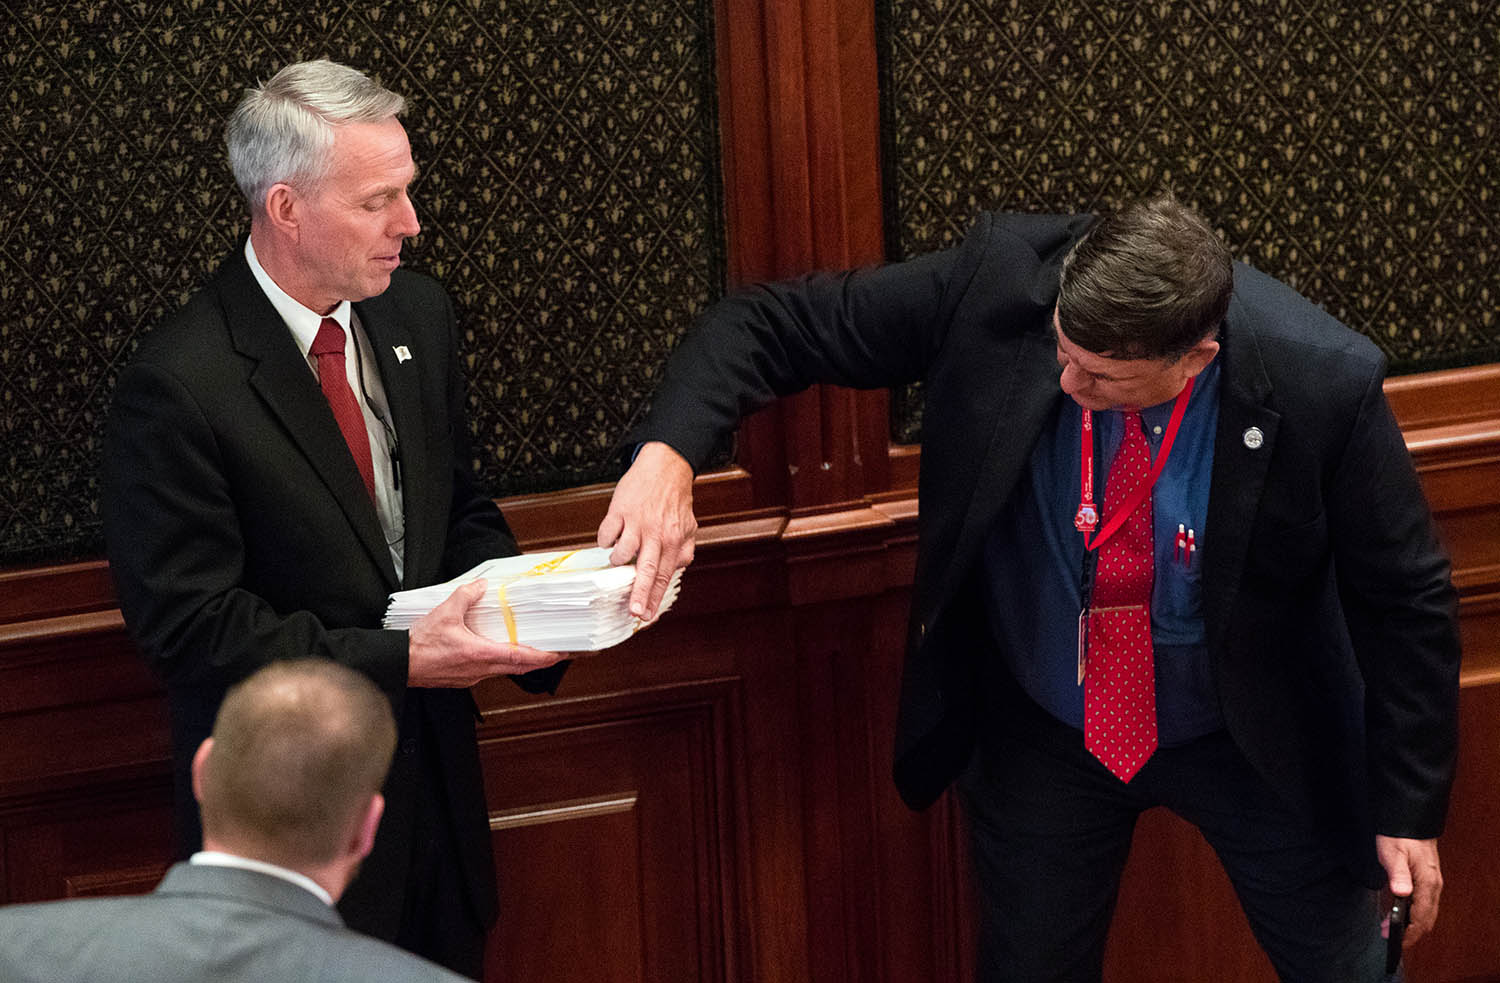 Illinois state Rep. Patrick Windhorst, R-Metropolis, poses with a print out of the 1581 pages of the just released Illinois state budget on the floor of the Illinois House chambers Friday, May 31, 2019. [Ted Schurter/The State Journal-Register]